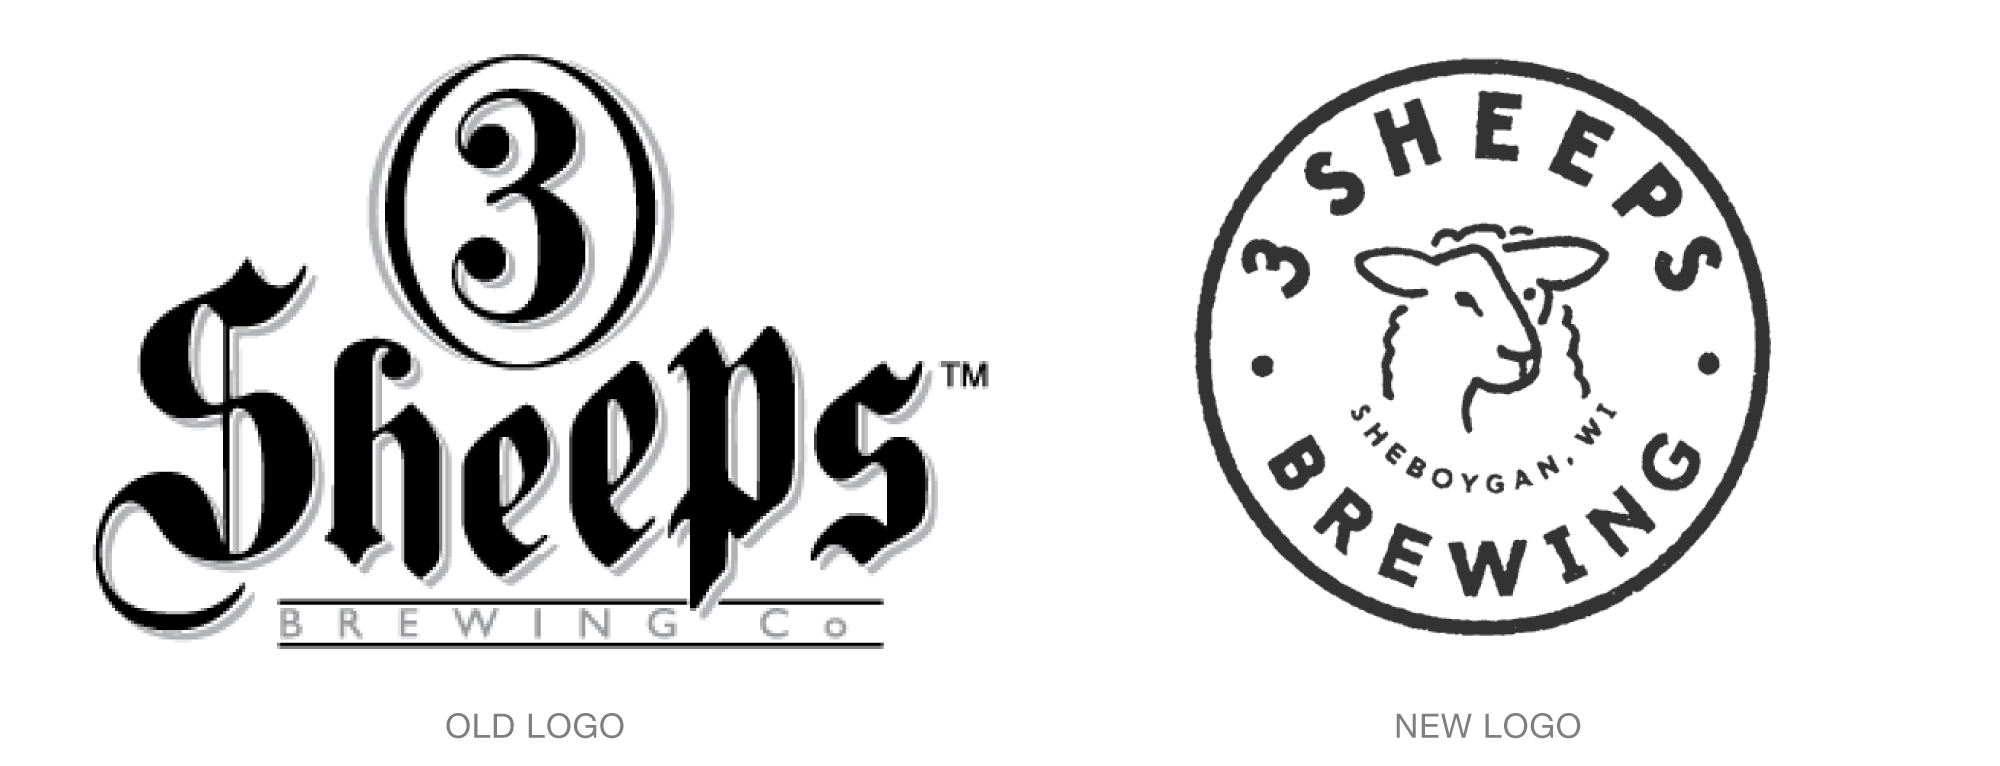 Old vs. New Logo